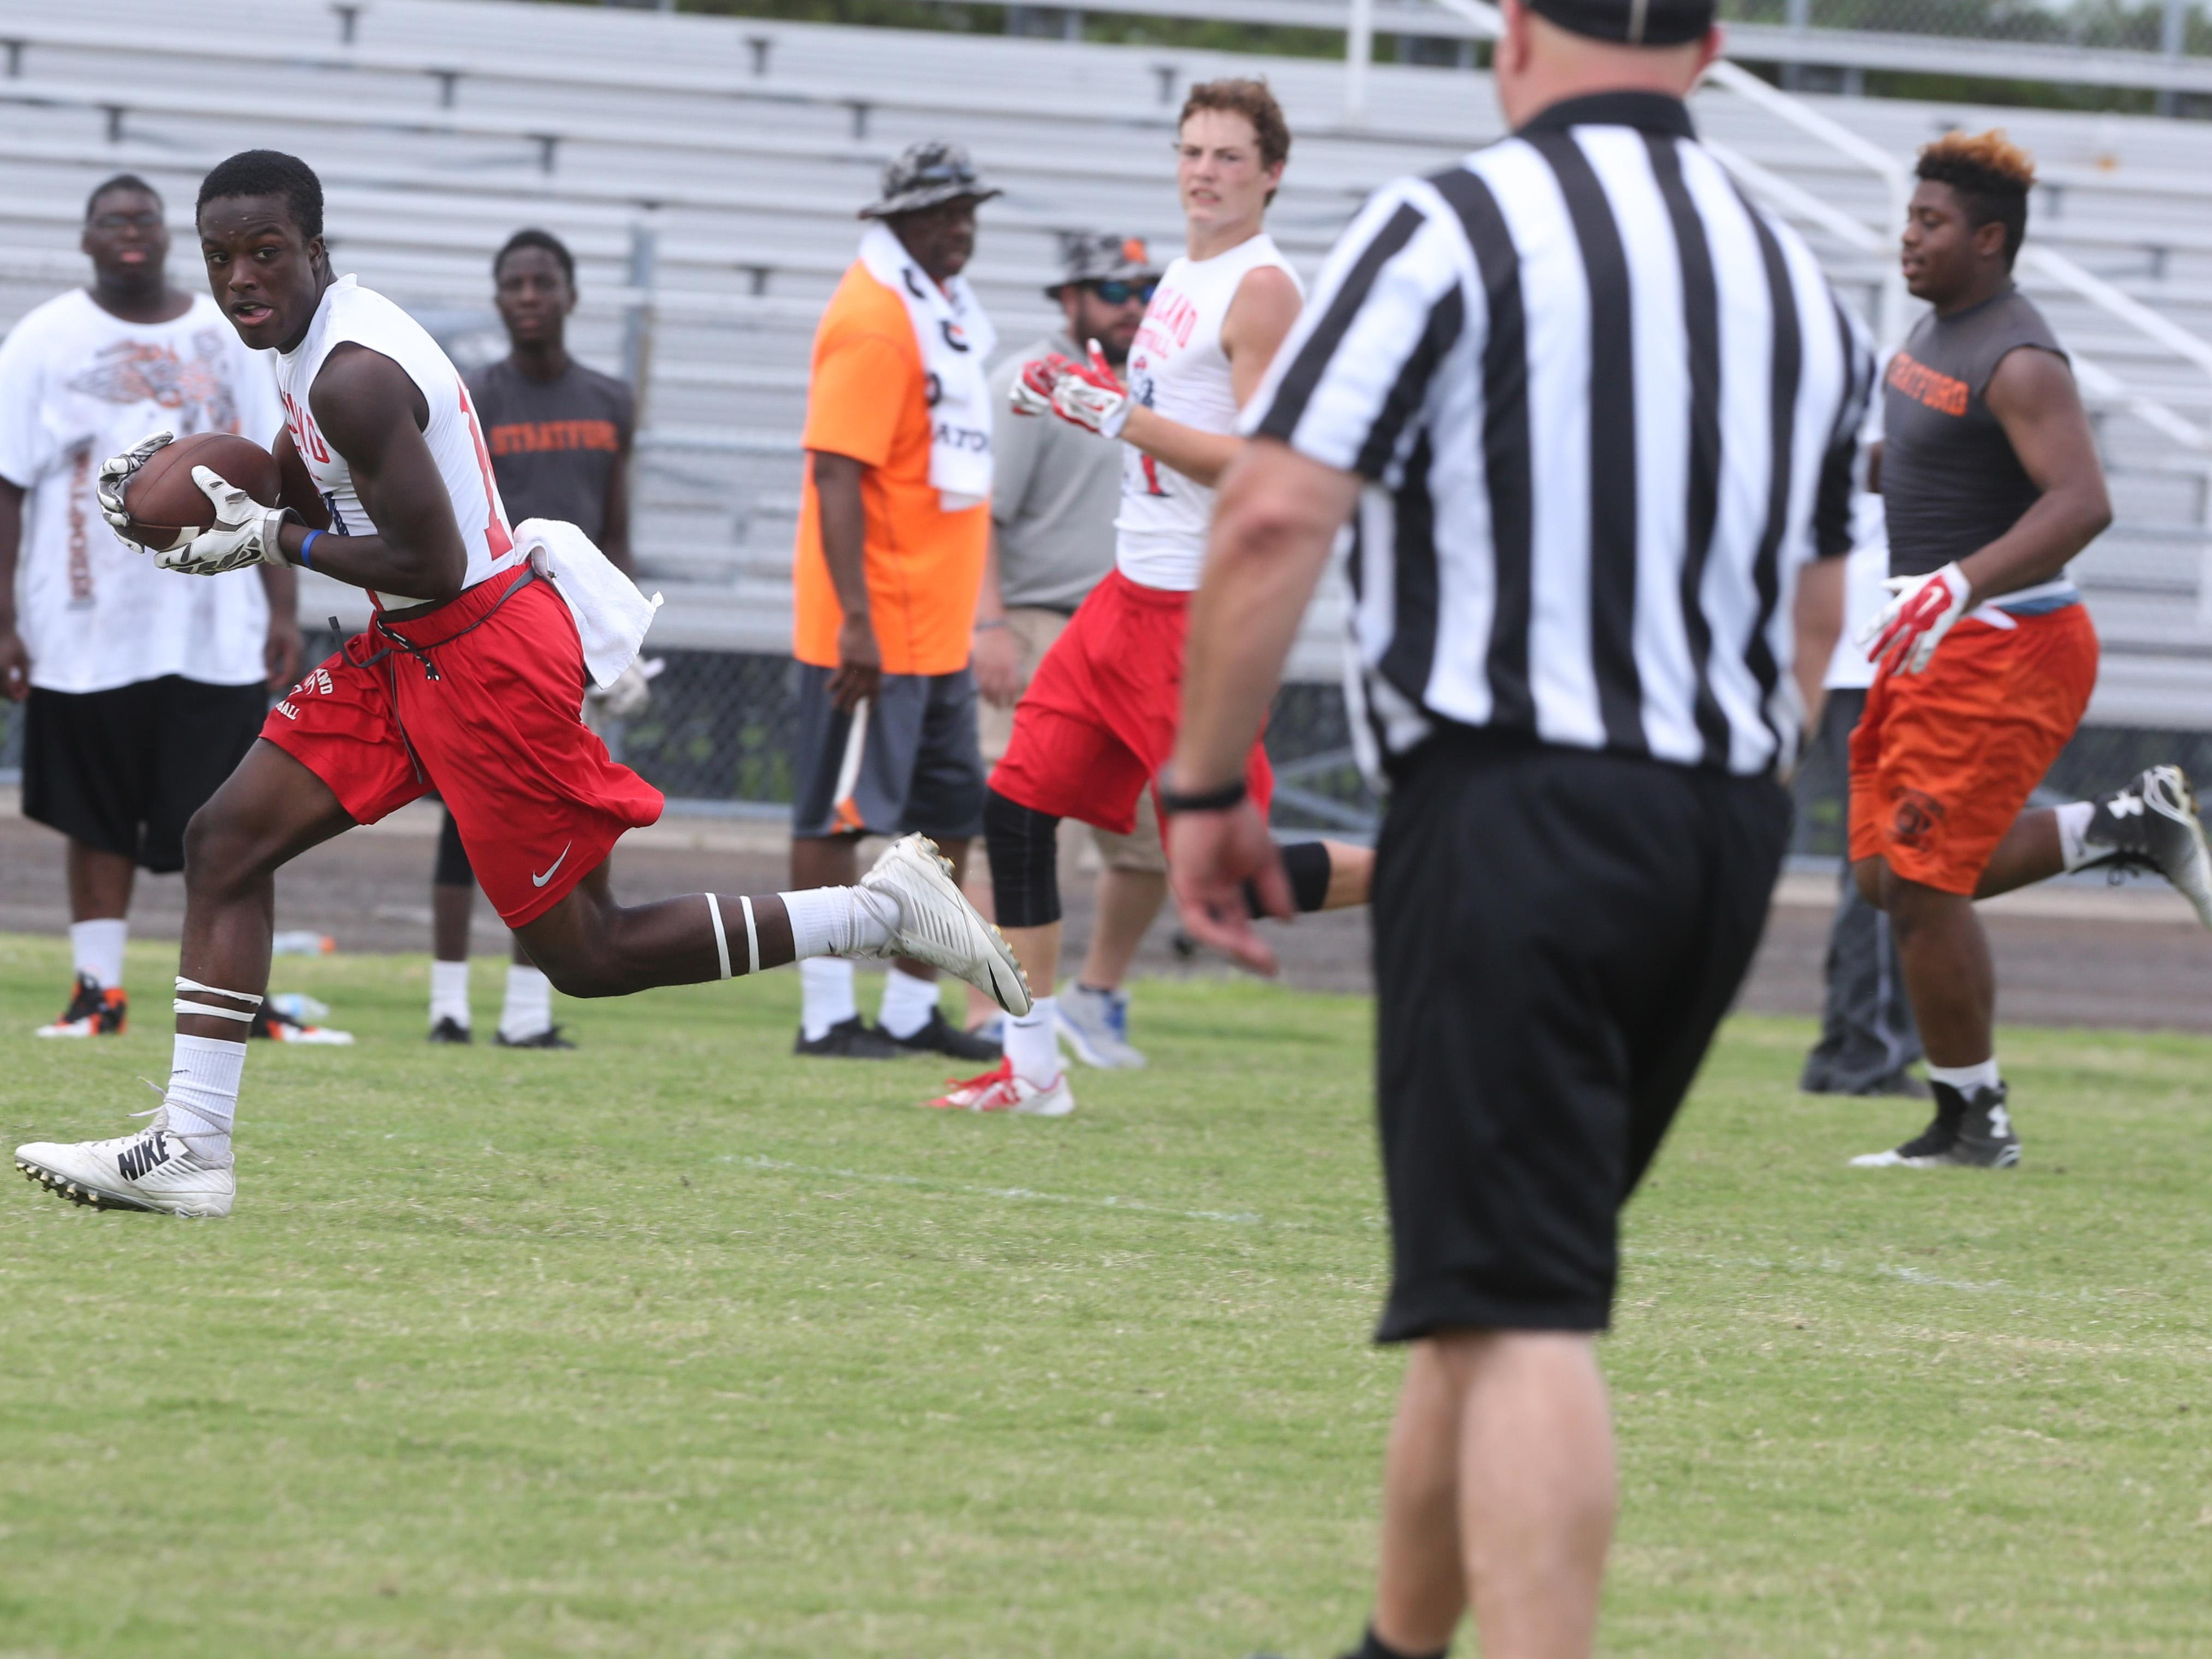 Oakland's Zarius Gamble pulls in a touchdown pass during a win over Stratford in Saturday's Ravenwood 7-on-7 Passing Tournament. Gamble reached the semfinals of the tournament.